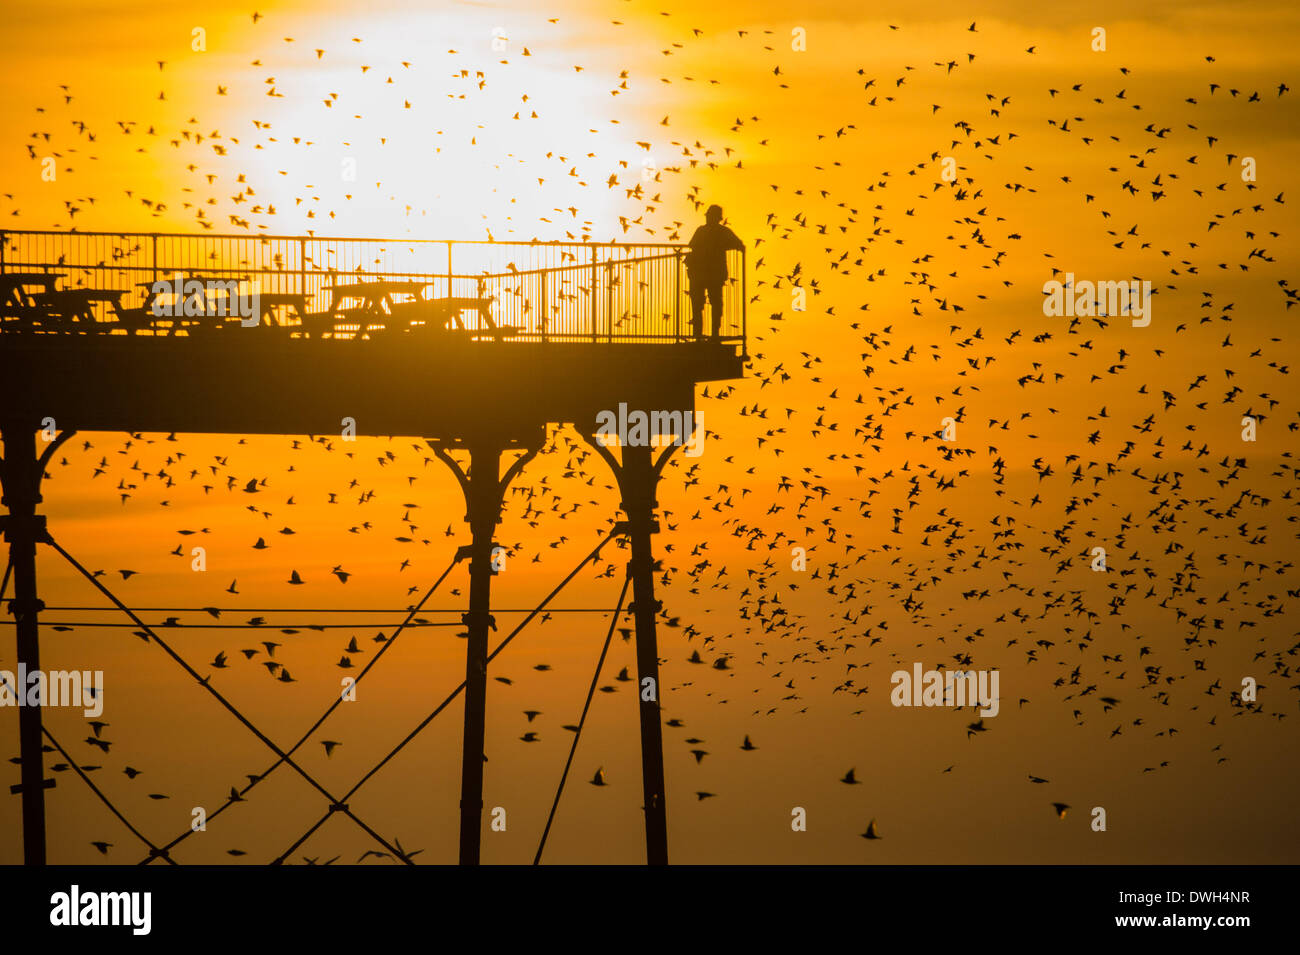 Aberystwyth, Wales, UK. 8th March 2014.   Flocks of starlings fly in to roost on the cast iron legs of the Victorian seaside pier at Aberystwyth on the west wales coast UK.   At the end of a warm sunny day, with temperatures in the UK reaching 18C, people at the end of the pier enjoy the sunset over Cardigan Bay  and the murmuration of the birds  photo Credit: Keith morris/Alamy Live News - Stock Image